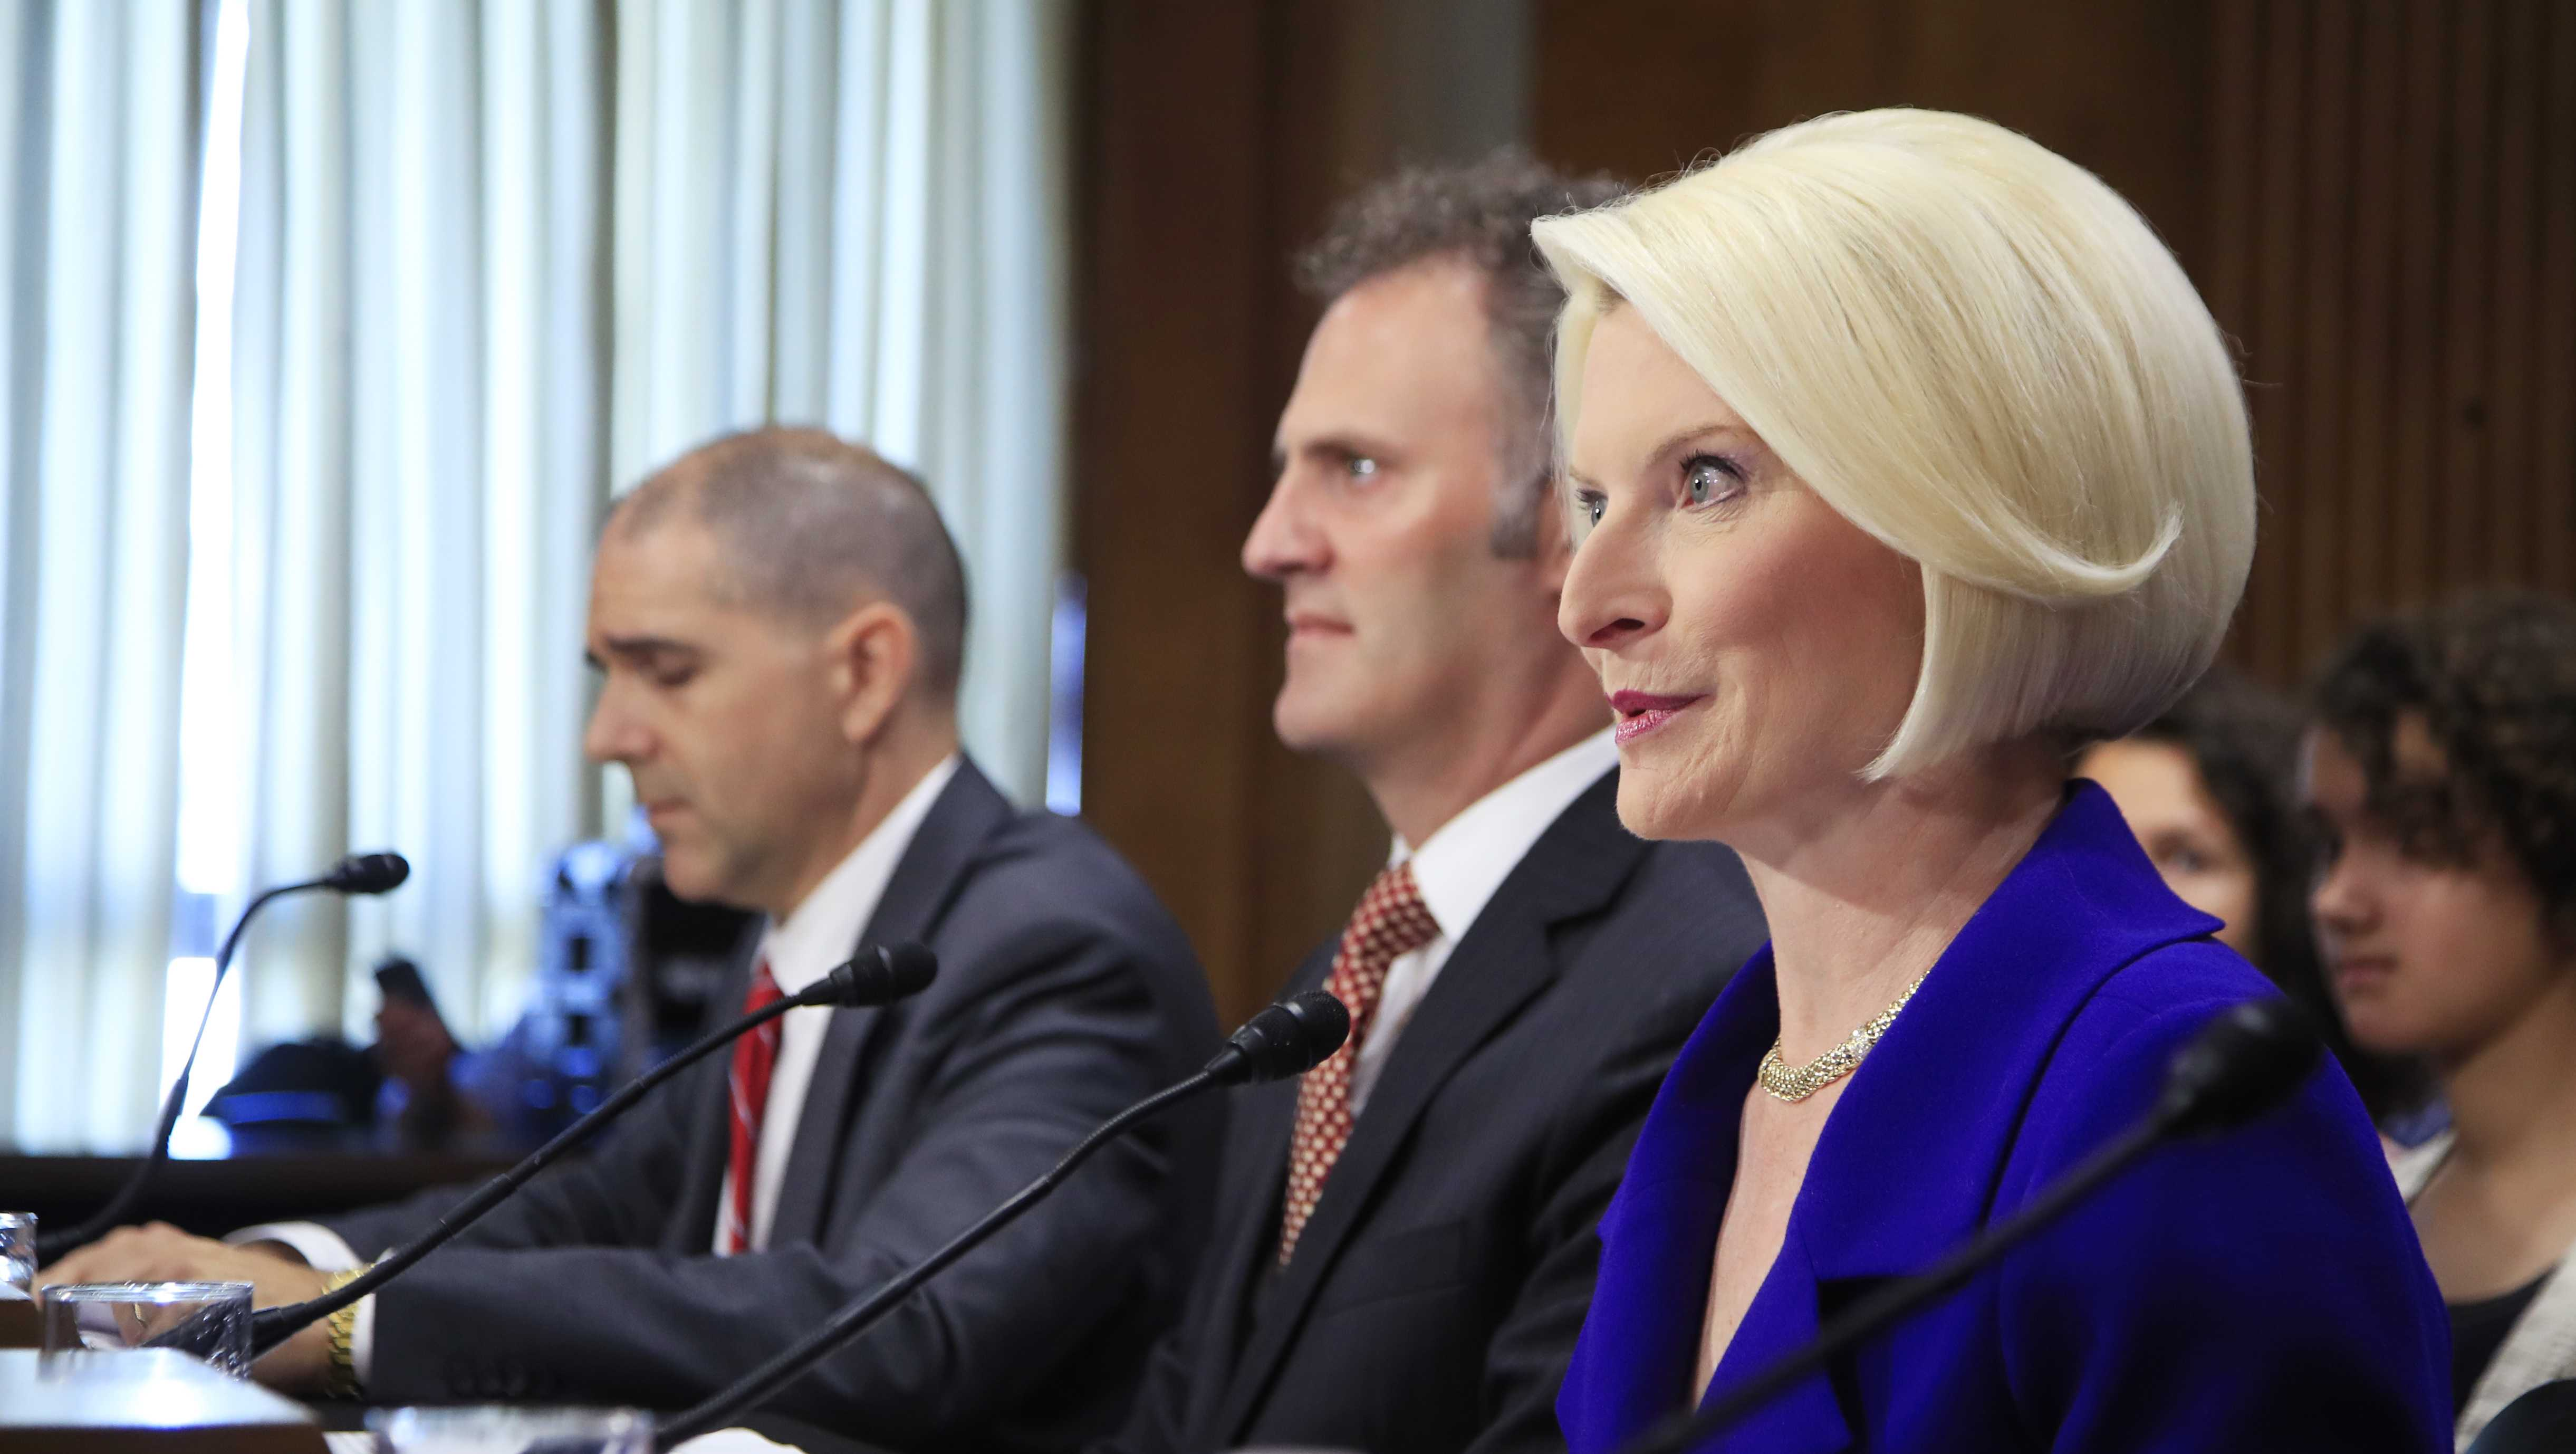 Callista Gingrich of Virginia, right, speaks on Capitol Hill in Washington, Tuesday, July 18, 2017, during a Senate Foreign Relations Committee hearing on her nomination to become U.S. Ambassador to the Vatican. Nathan Alexander Sales of Ohio, nominated to be Coordinator for Counterterrorism, with the rank and status of Ambassador at Large is at center, and Carl Risch of Pennsylvania, nominated to be an Assistant Secretary of State's Consular Affairs is at right.